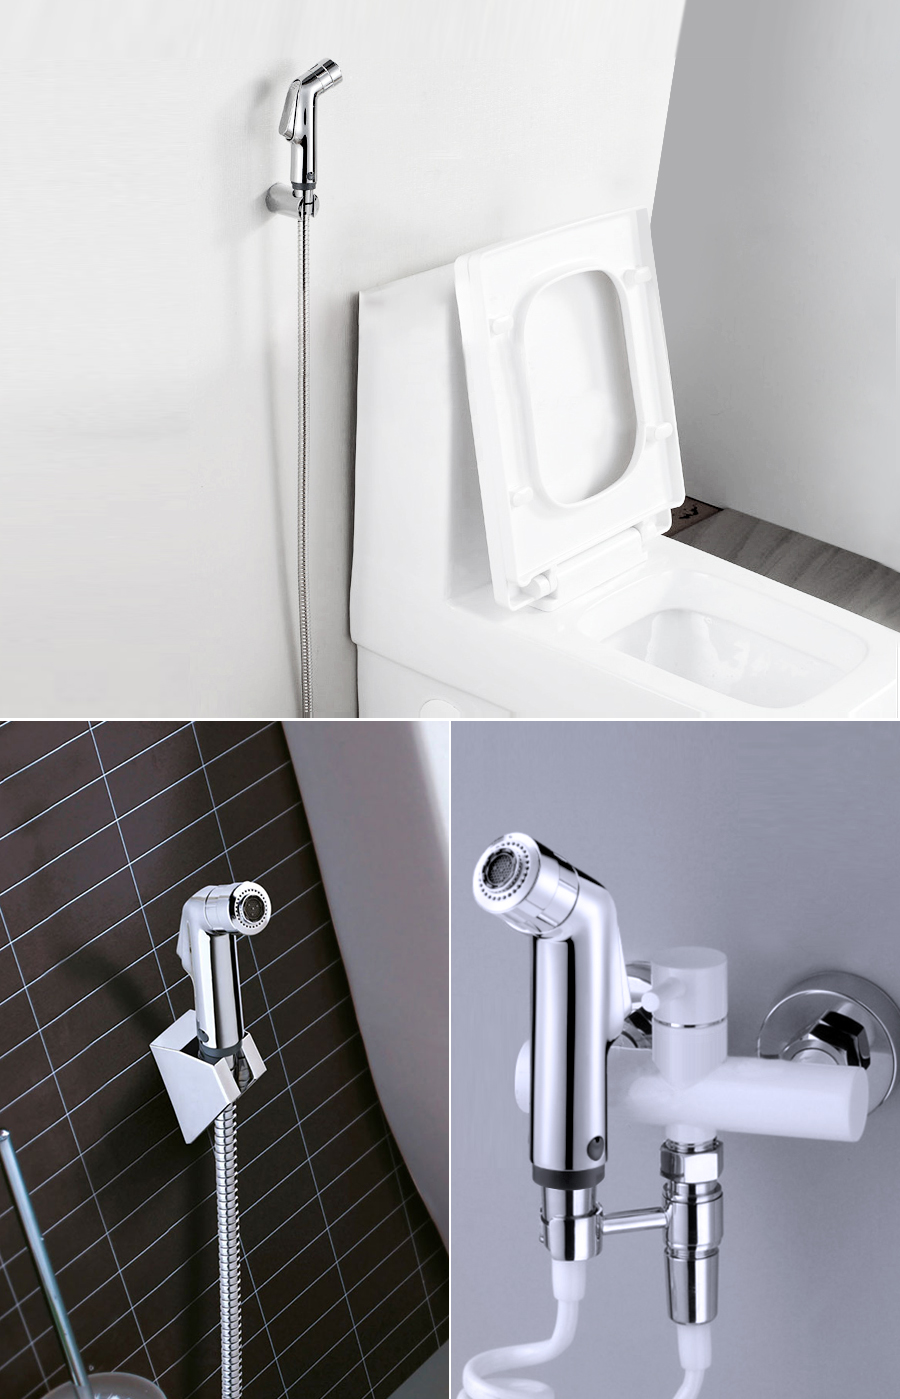 KCASA Double Modes Pressurize Bidet Shower Toilet Seat Shattaf Bathroom Kitchen Shower Head Sprayer